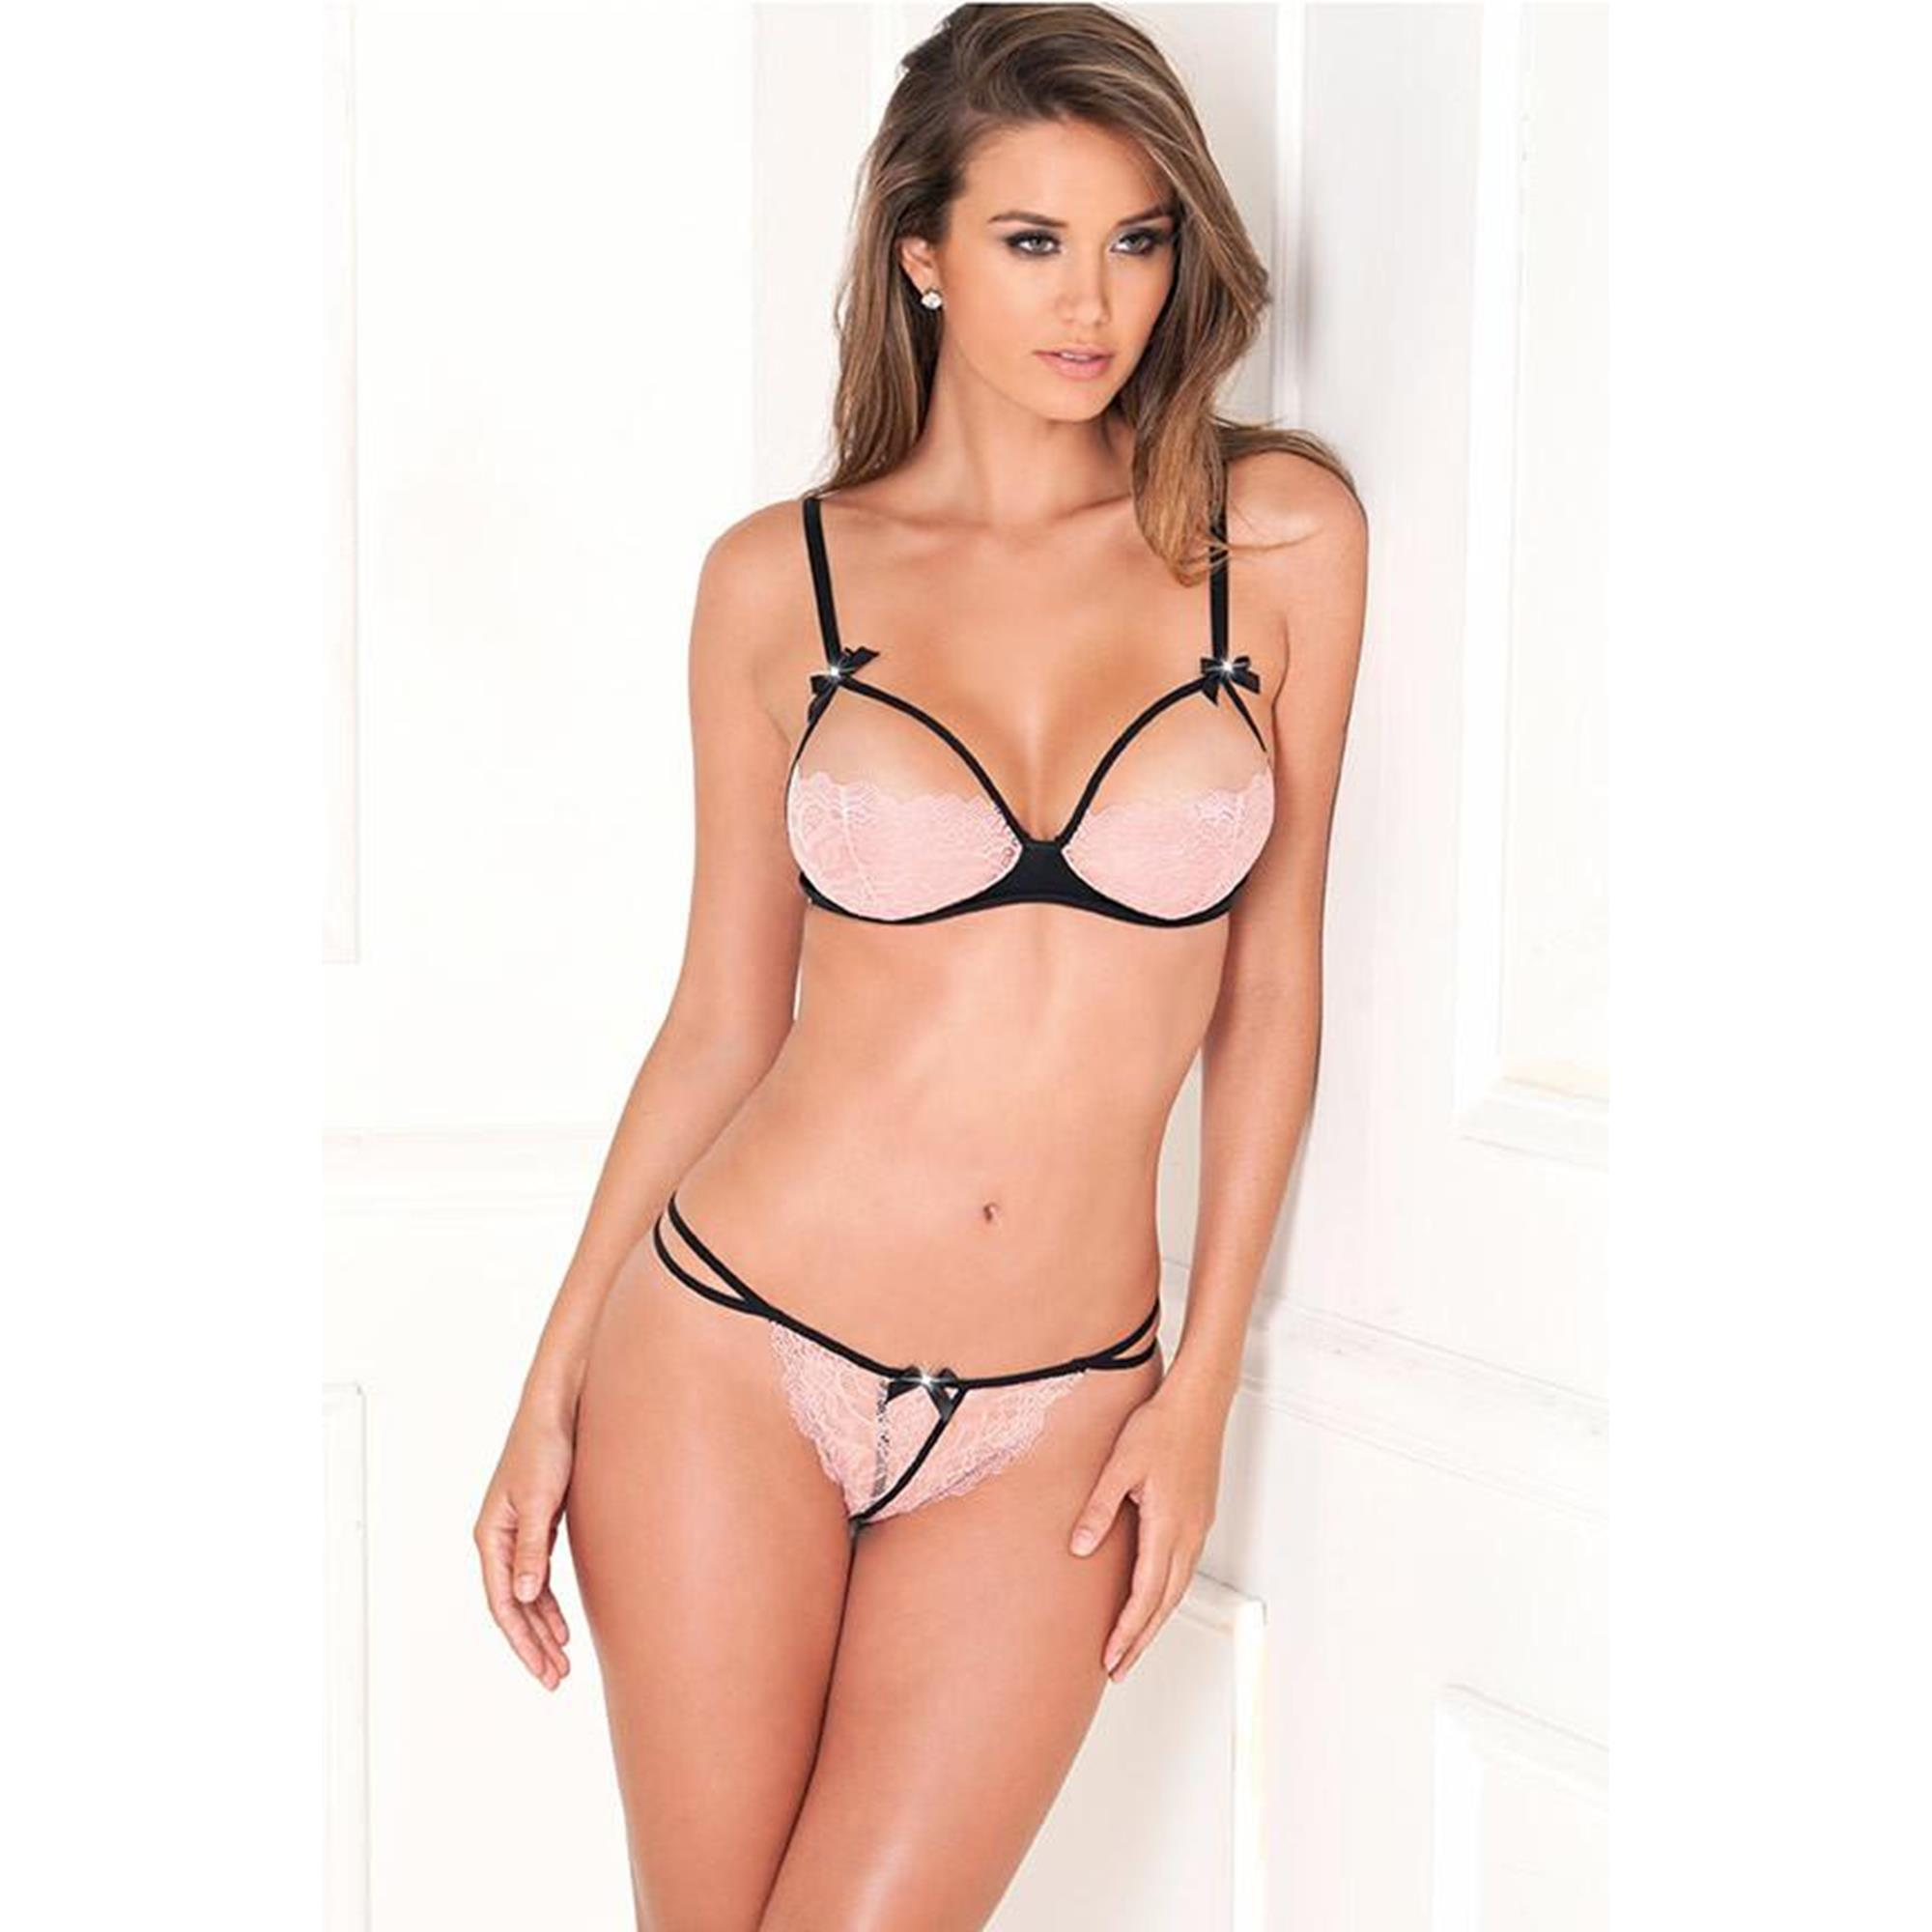 Image of 2PC Lace Bra Pink Cups and G-String M/L